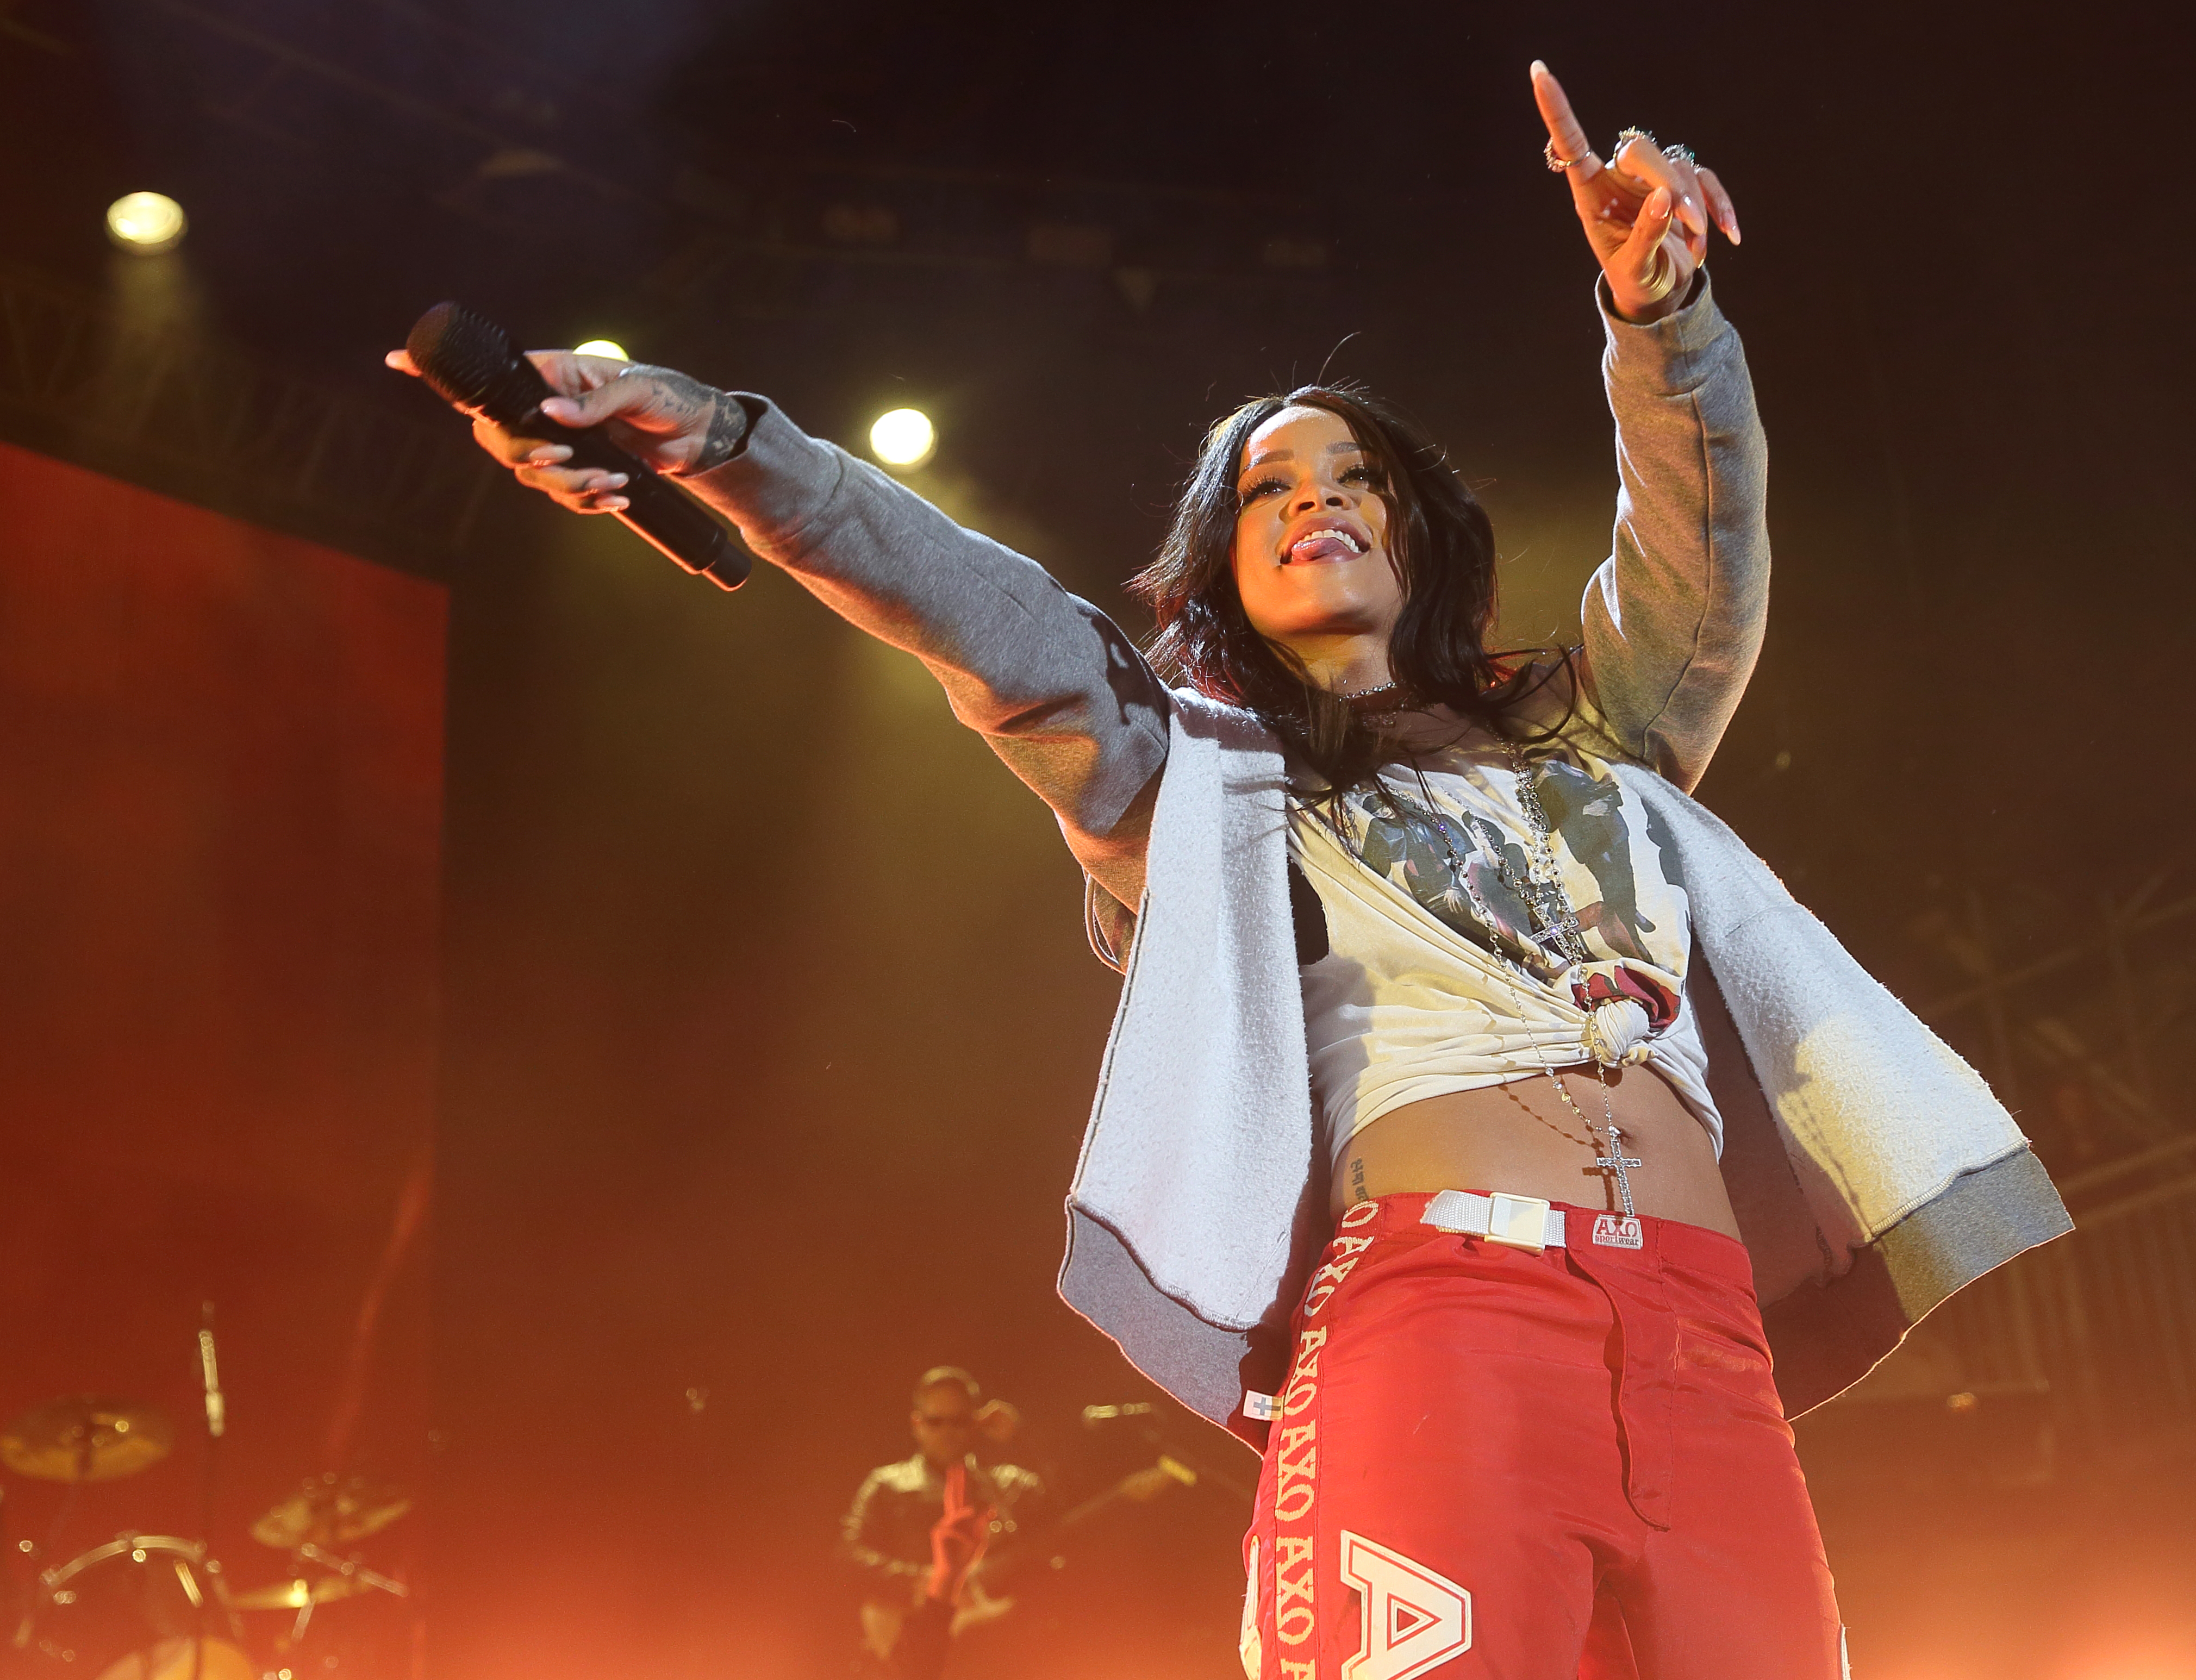 60 WEEKS. Rihanna overtakes The Beatles for staying on top of the Billboard hit singles chart for the second longest time. This photo is from her performing at the March Madness Music Festival at the White River State Park in Indianapolis, USA, April 2015. File photo by Steve C Mitchell/EPA